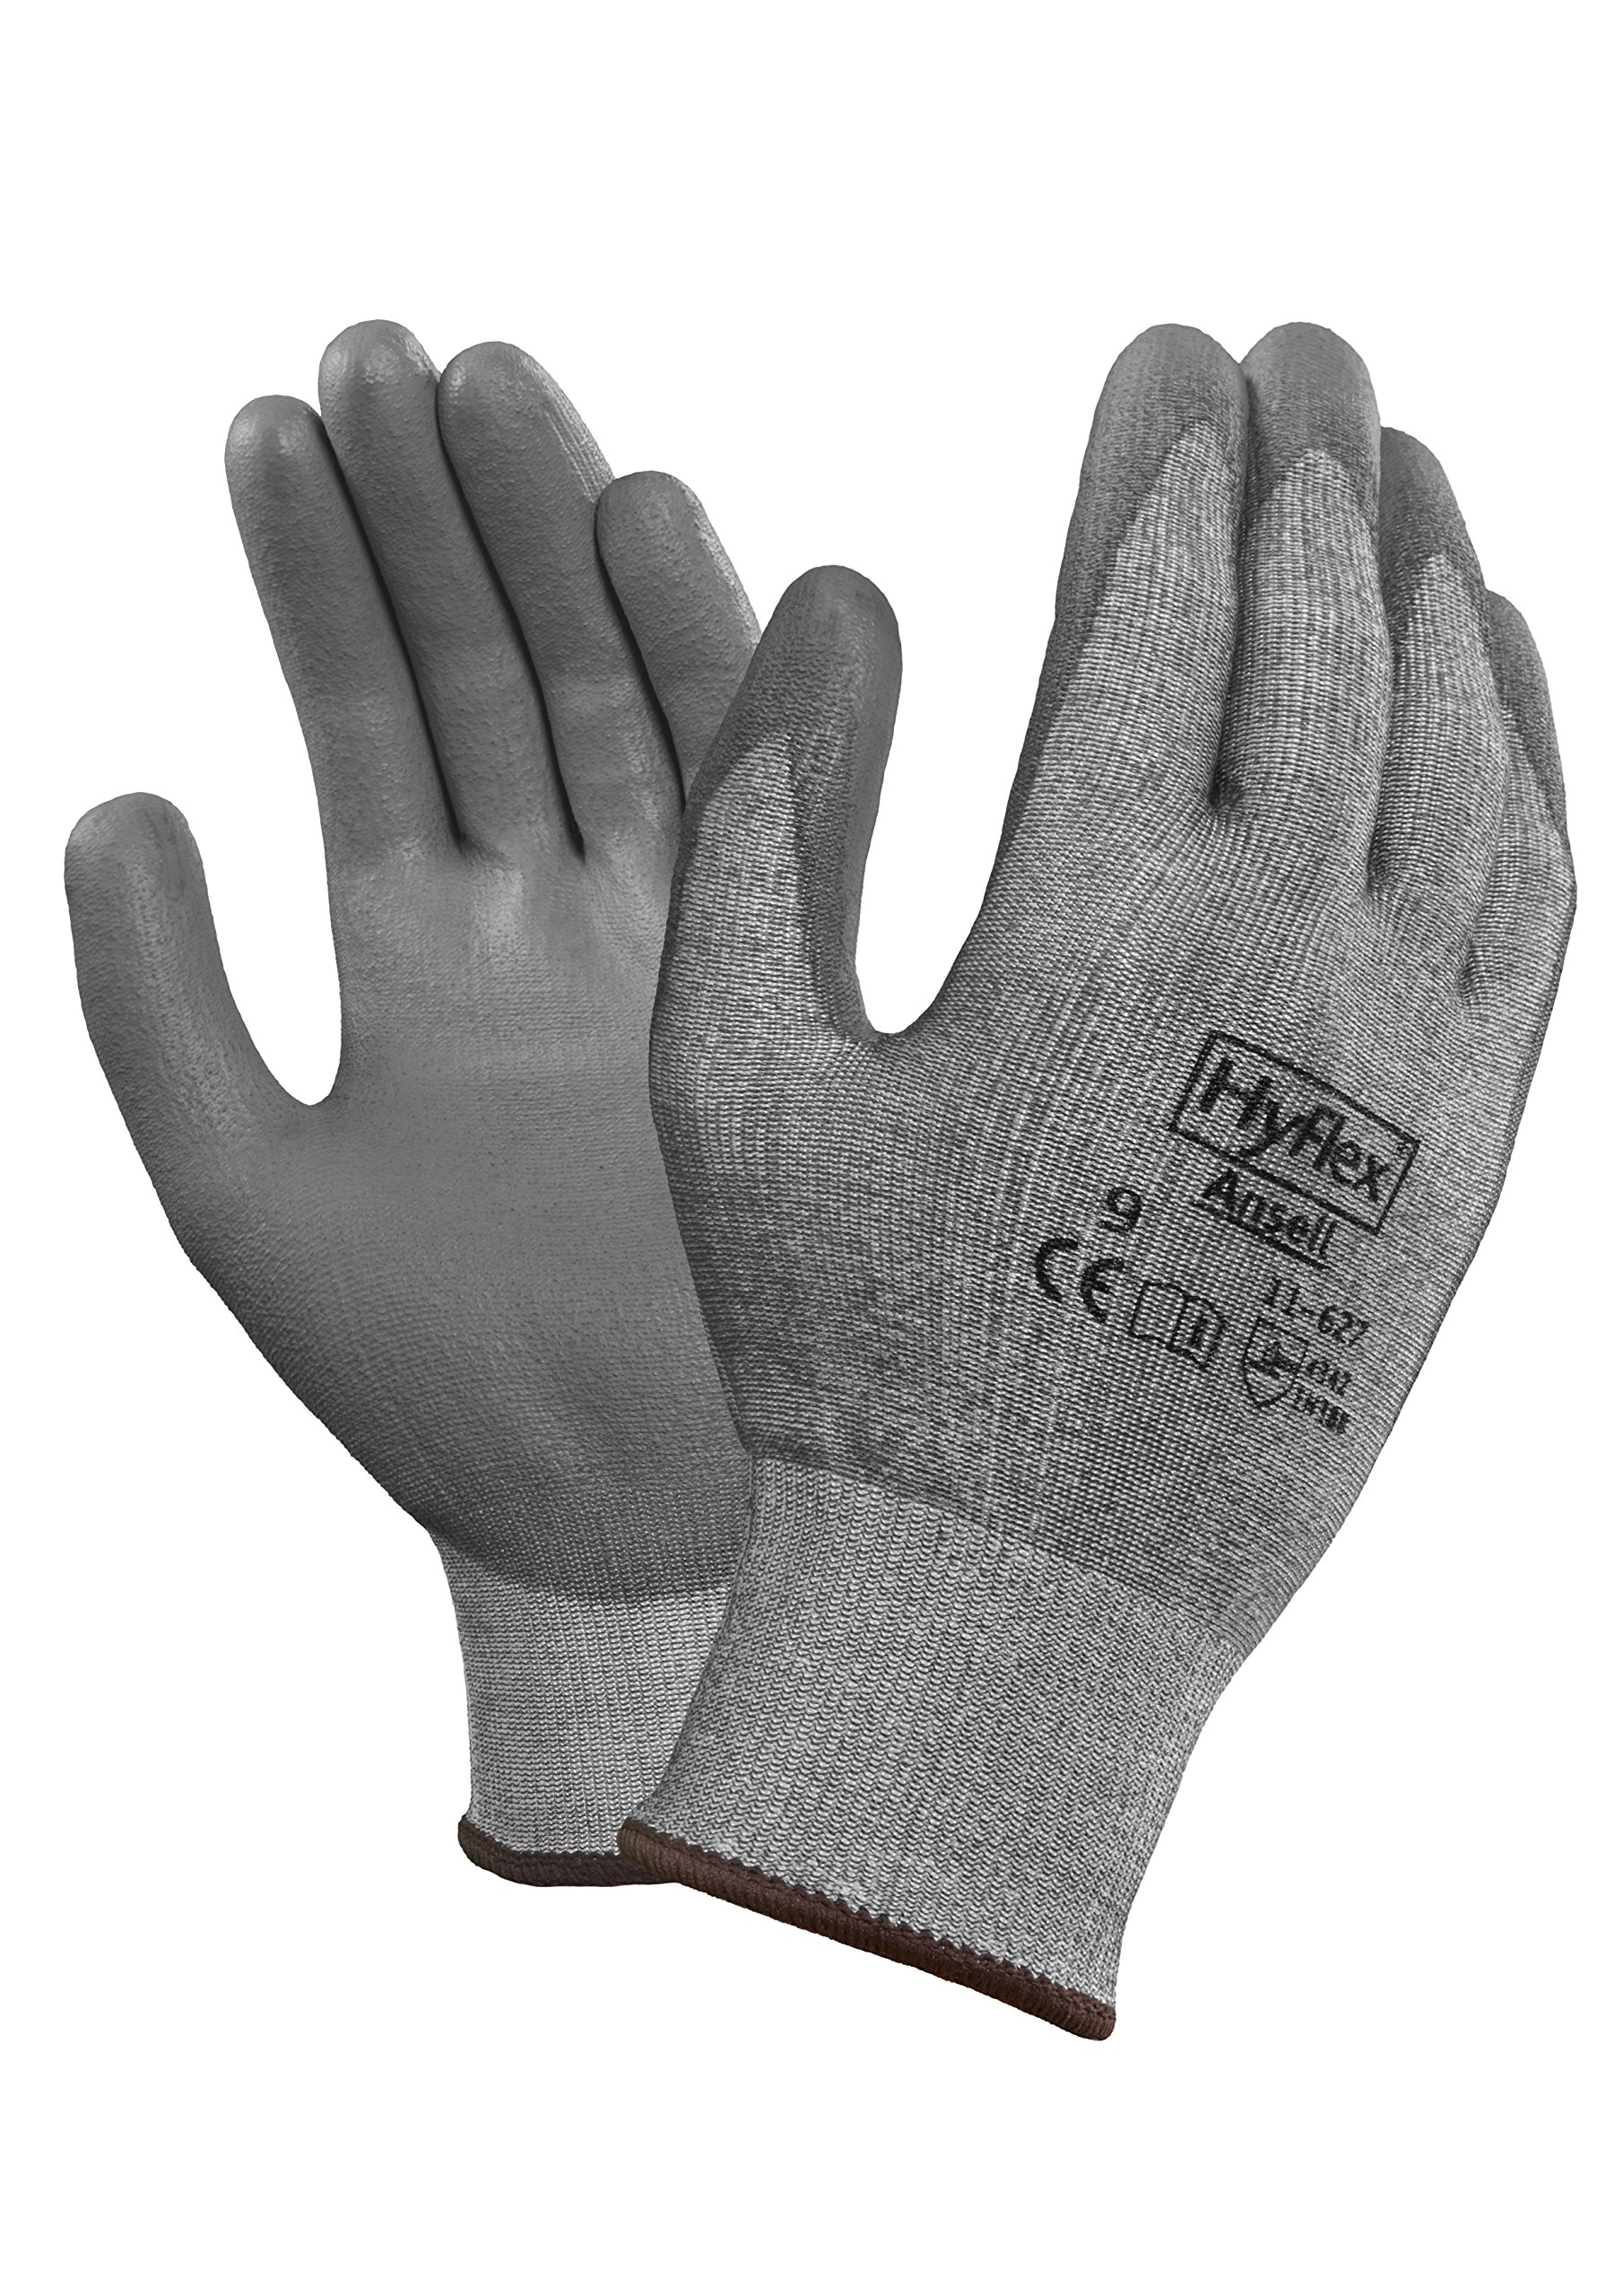 Ansell 116277 HyFlex 11-627 Coated Dipped Dyneema HPPE and LYCRA Lined Gloves, 9'' Length, 5'' Width, 0.29'' Height, Size 7, Gray (Pack of 12) by Ansell (Image #1)